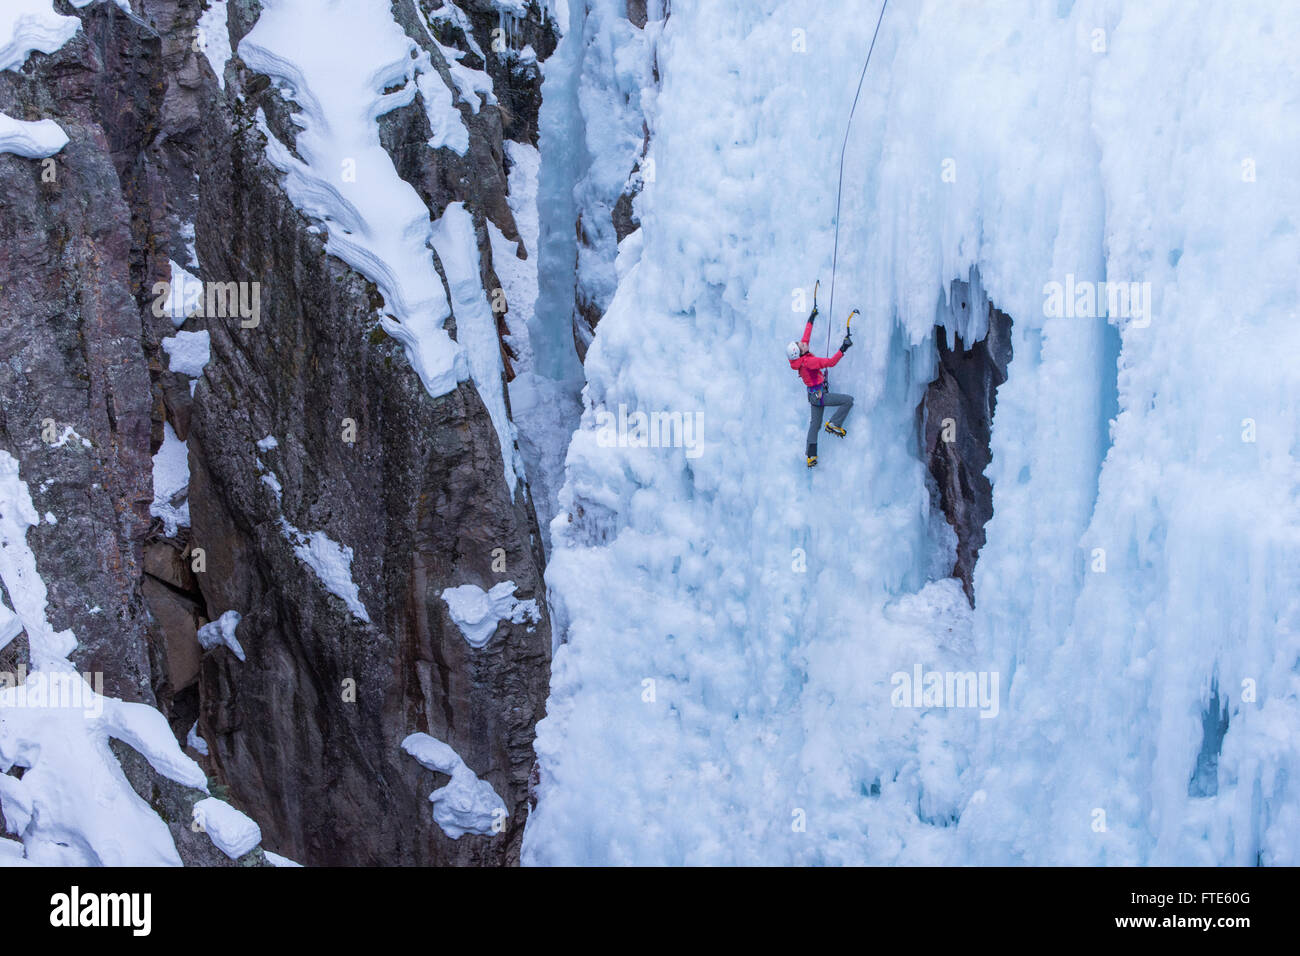 Ice Climber climbing un percorso chiamato Pick o' Vic che è classificato WI4 Ouray in Colorado Immagini Stock